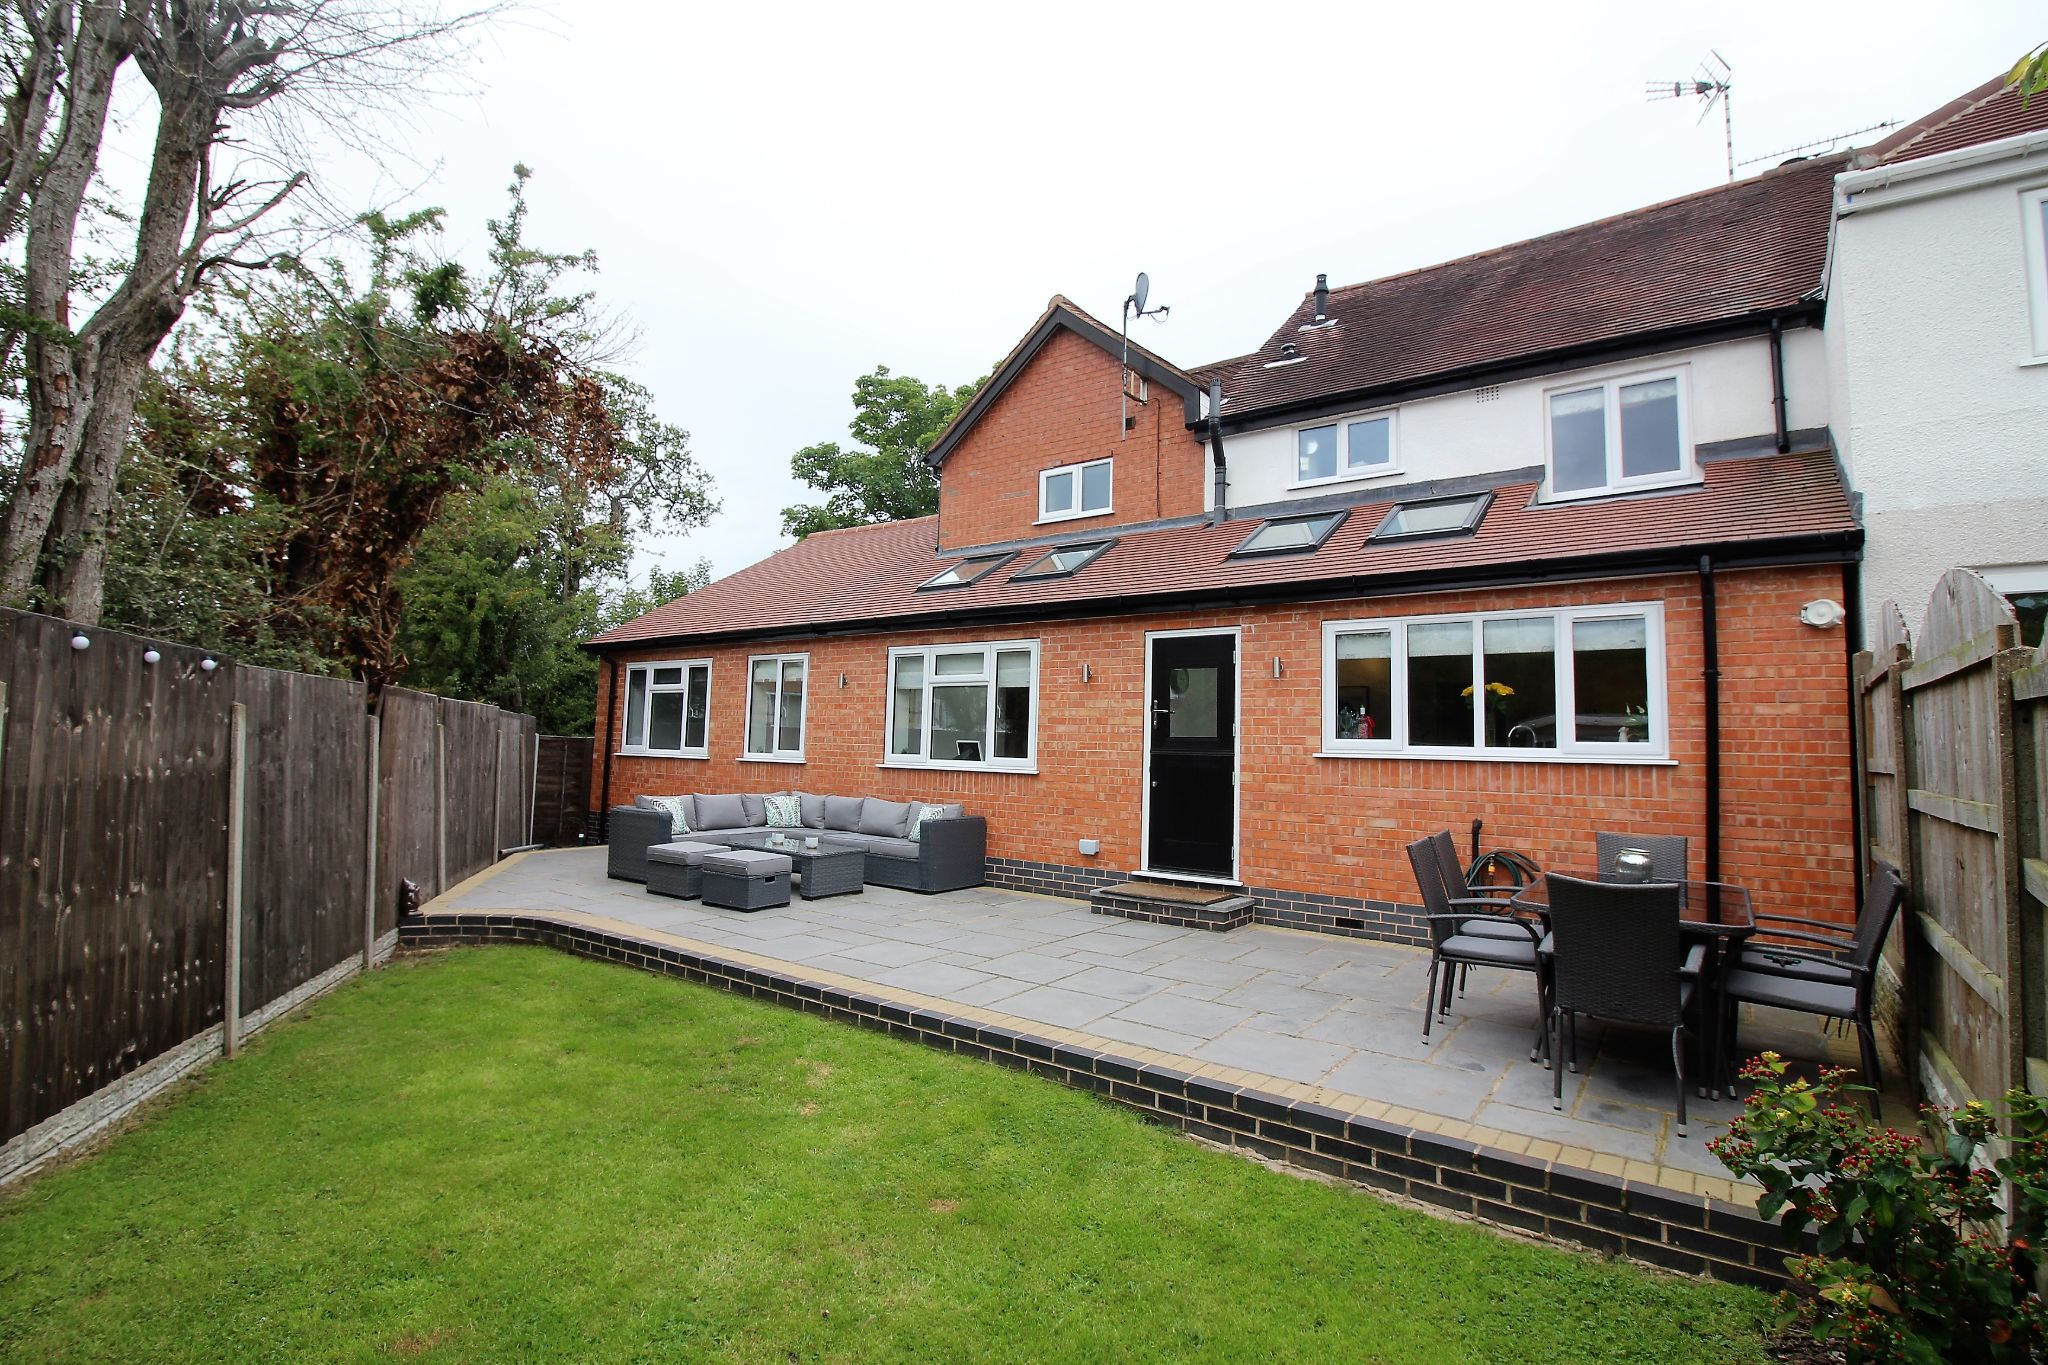 4 bedroom semi-detached house SSTC in Solihull - Photograph 17.